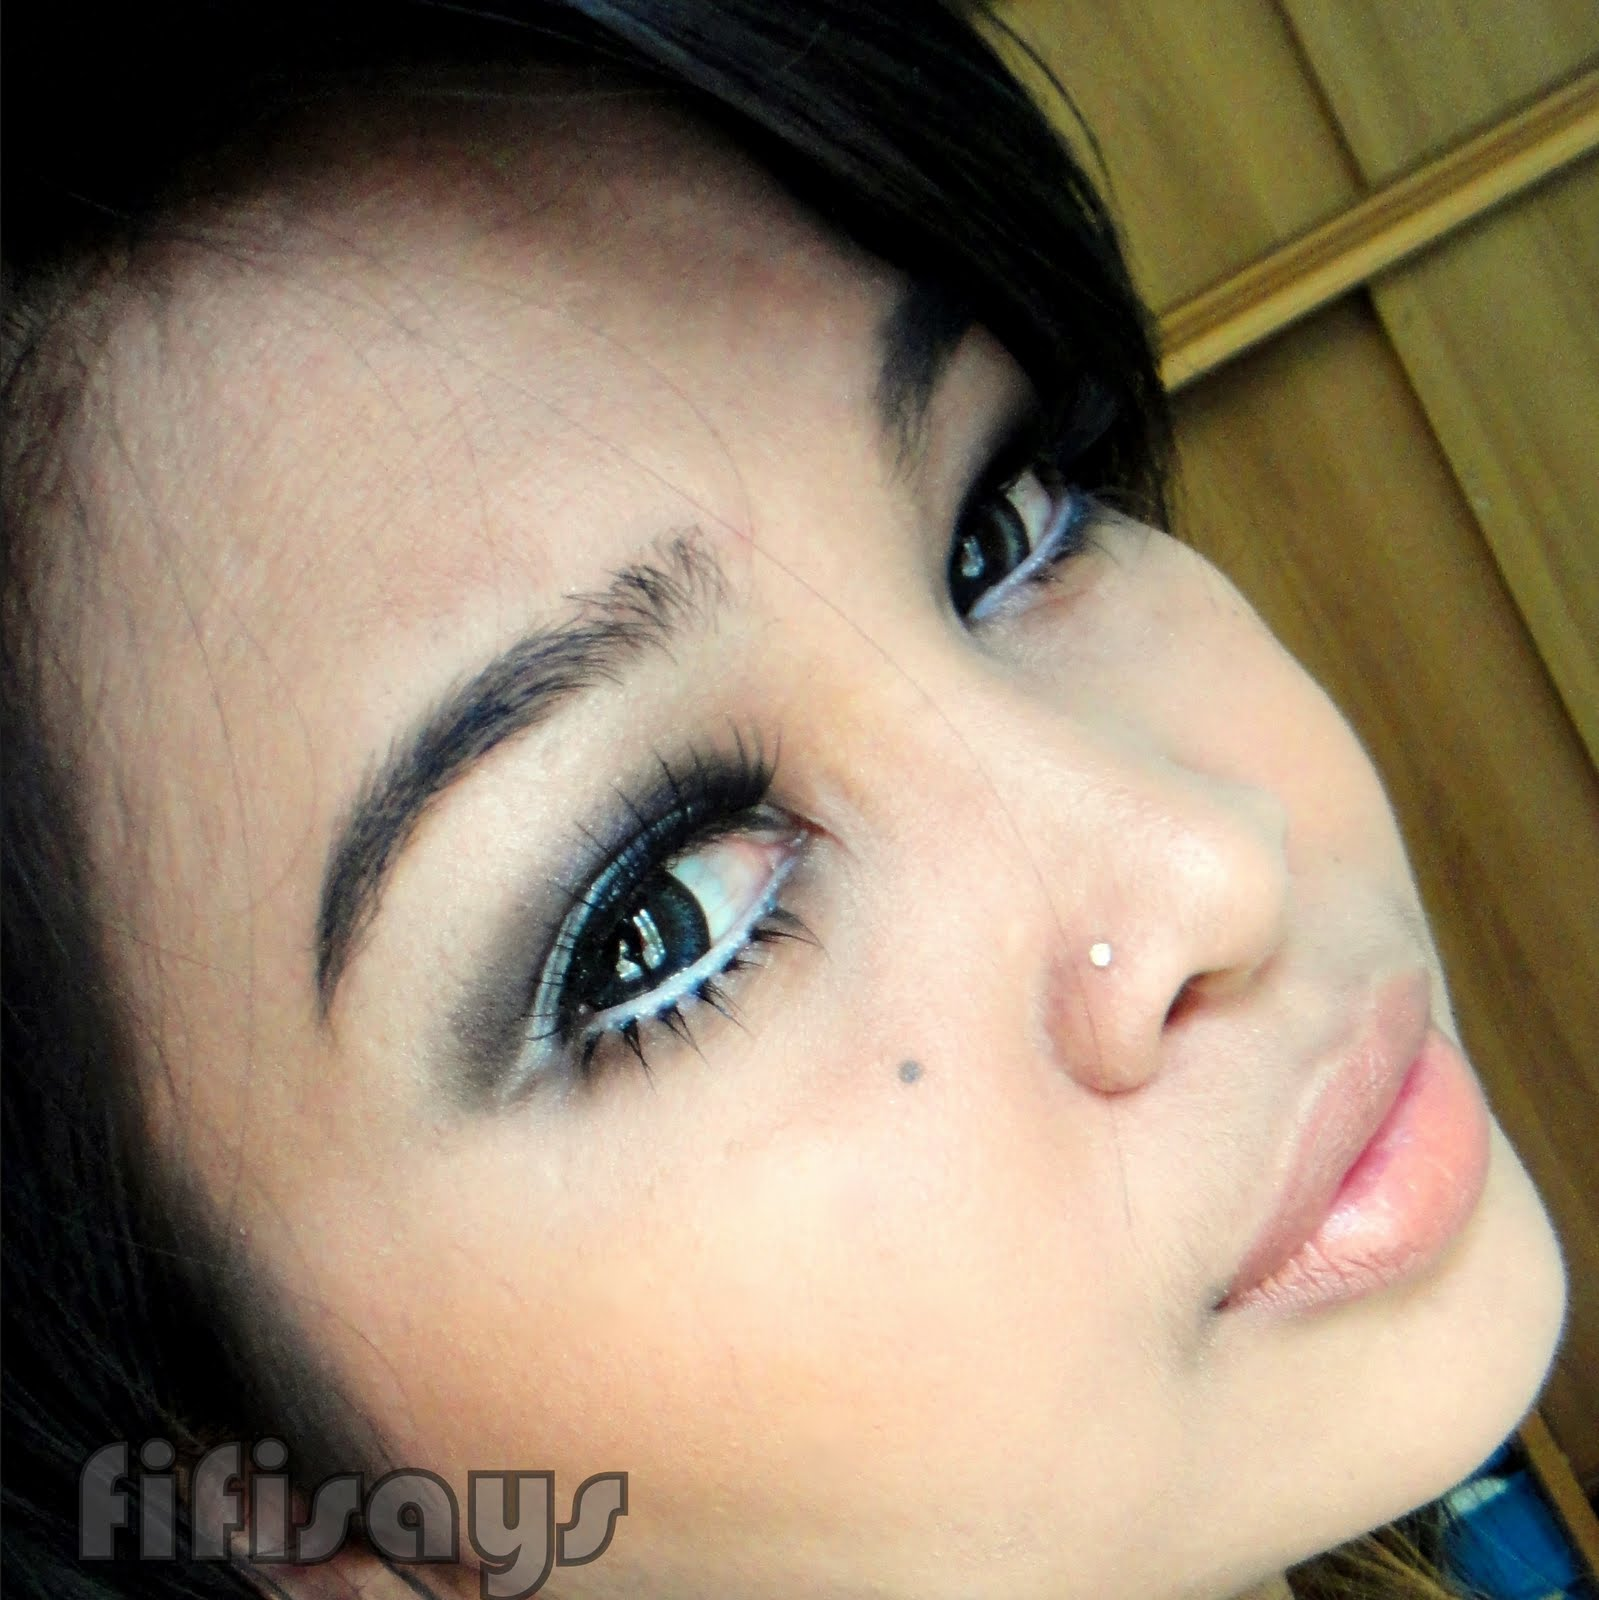 http://4.bp.blogspot.com/-ifvRZdQGOLQ/TlJcCoc09LI/AAAAAAAAAG8/VZohJjnhqD4/s1600/Move+Like+Jagger+Make+Up+Look+-+Face+2.JPG